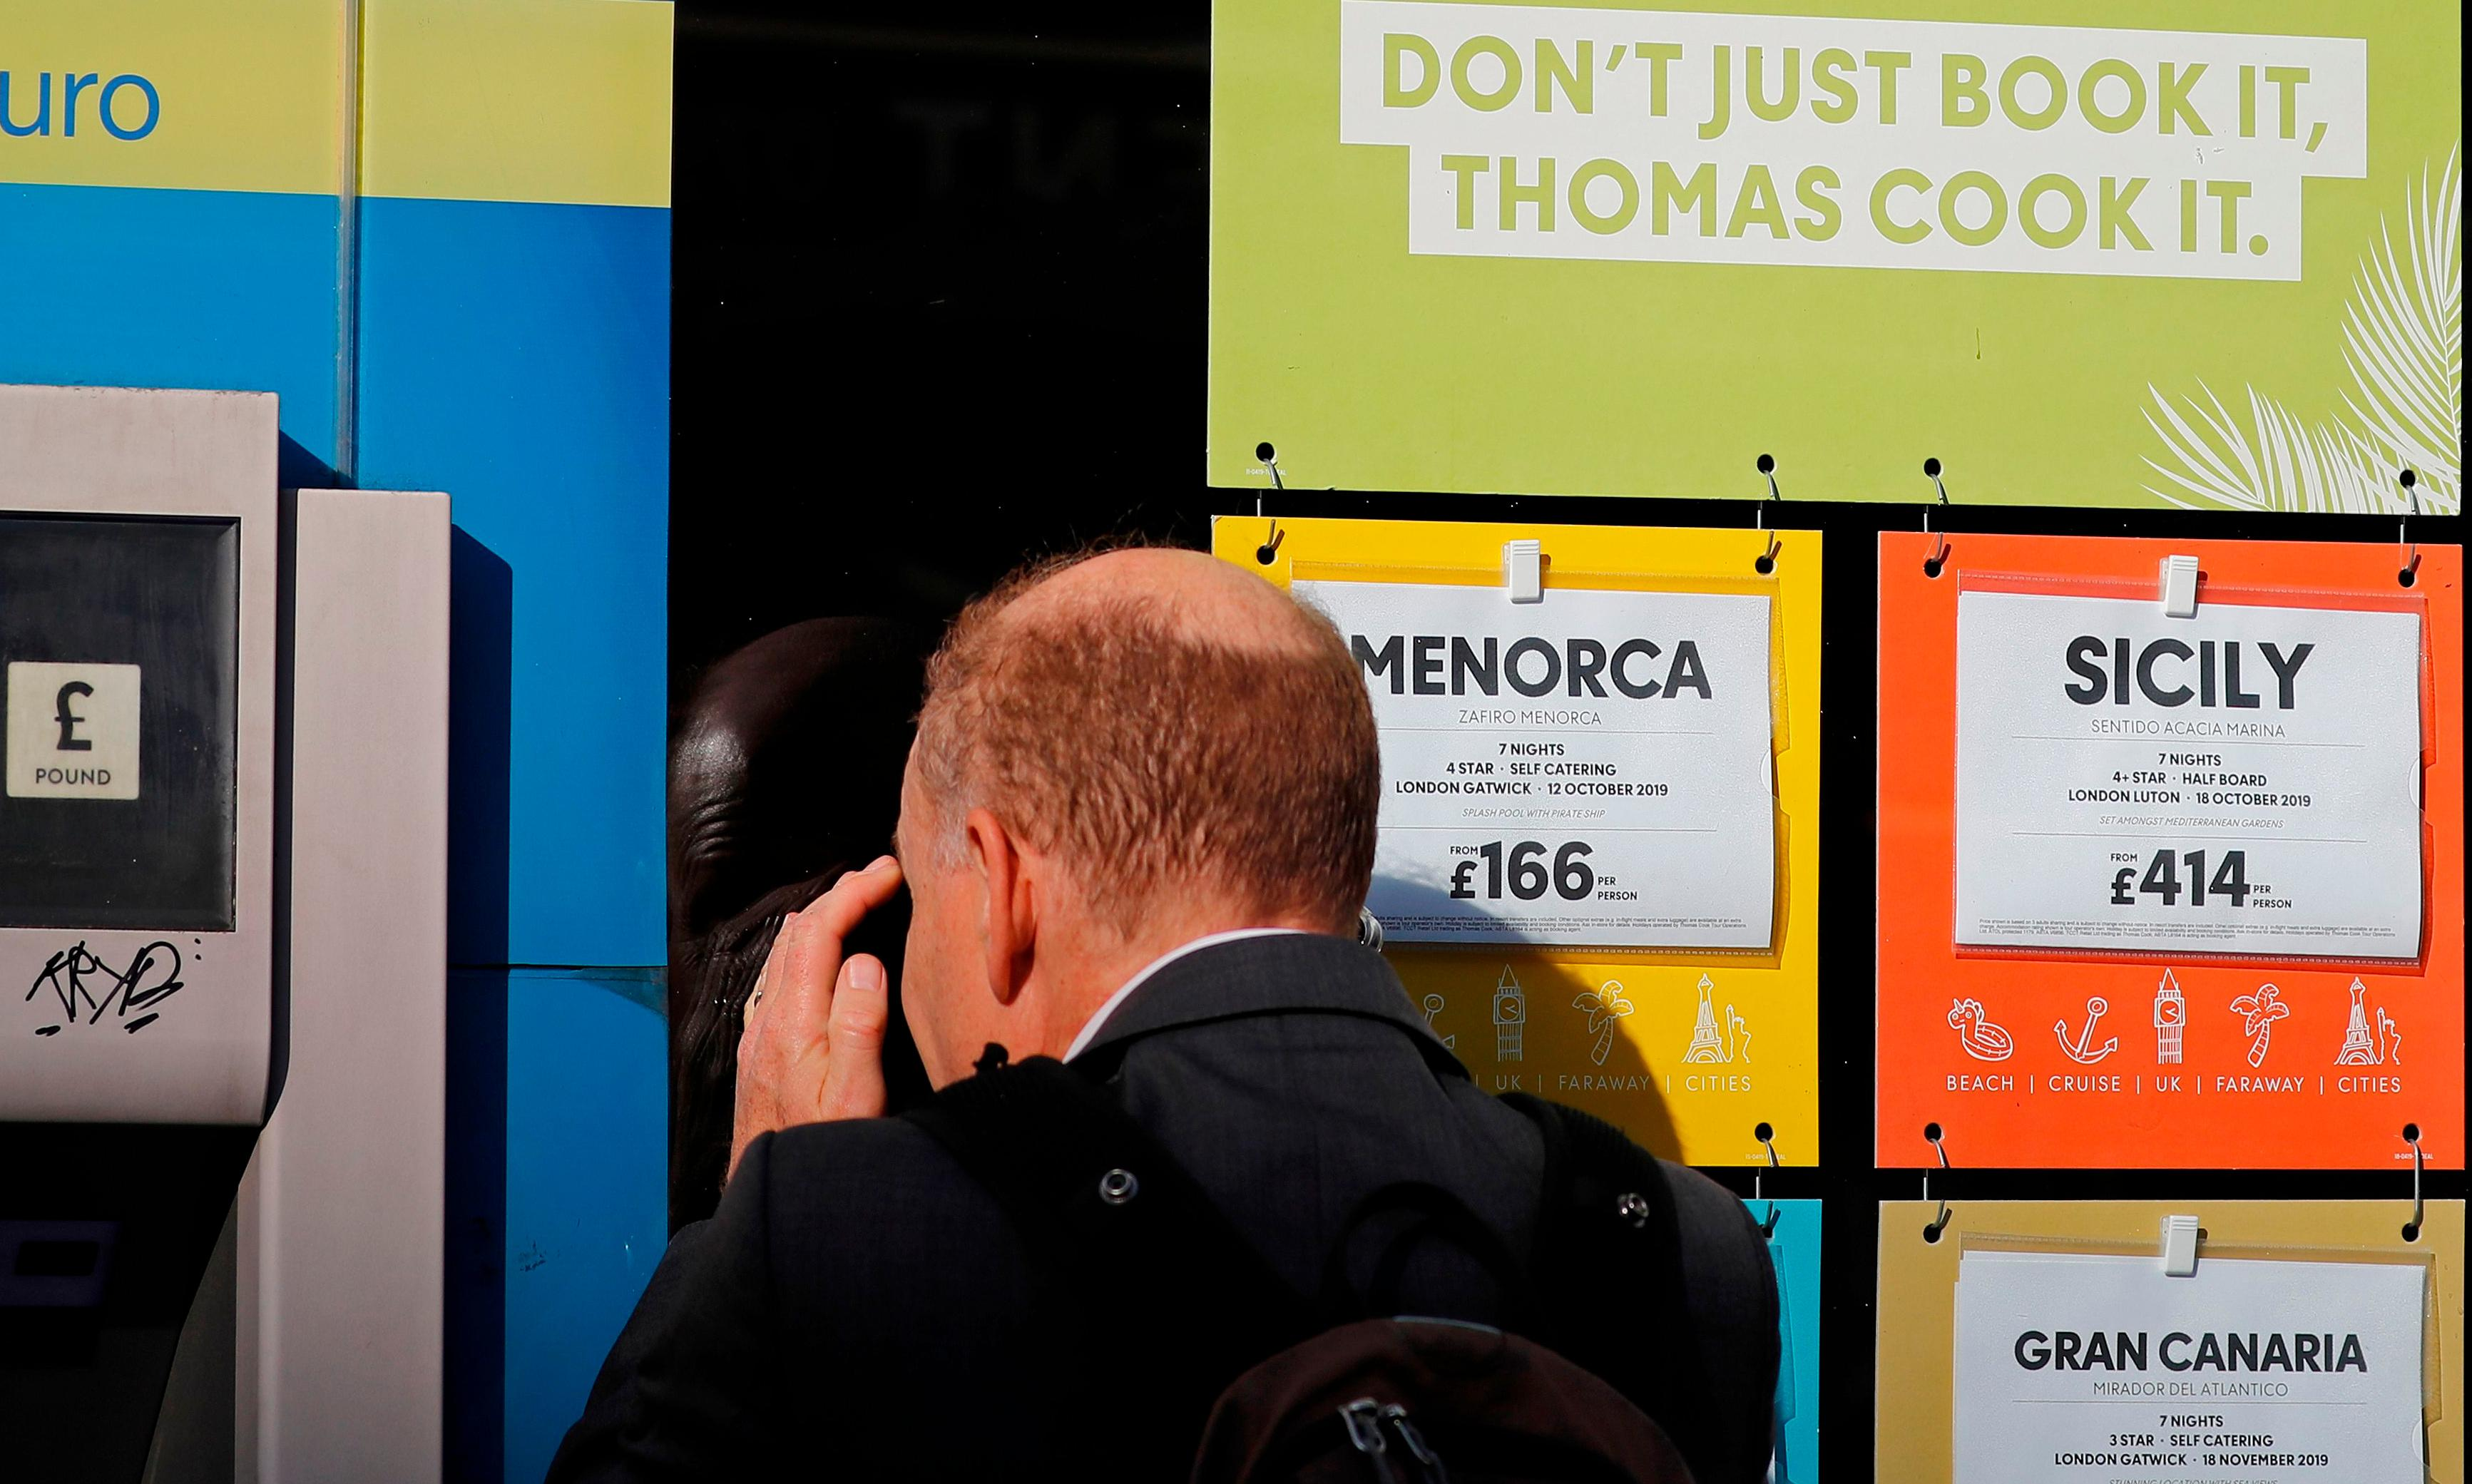 Thomas Cook: what can we learn about booking holidays?